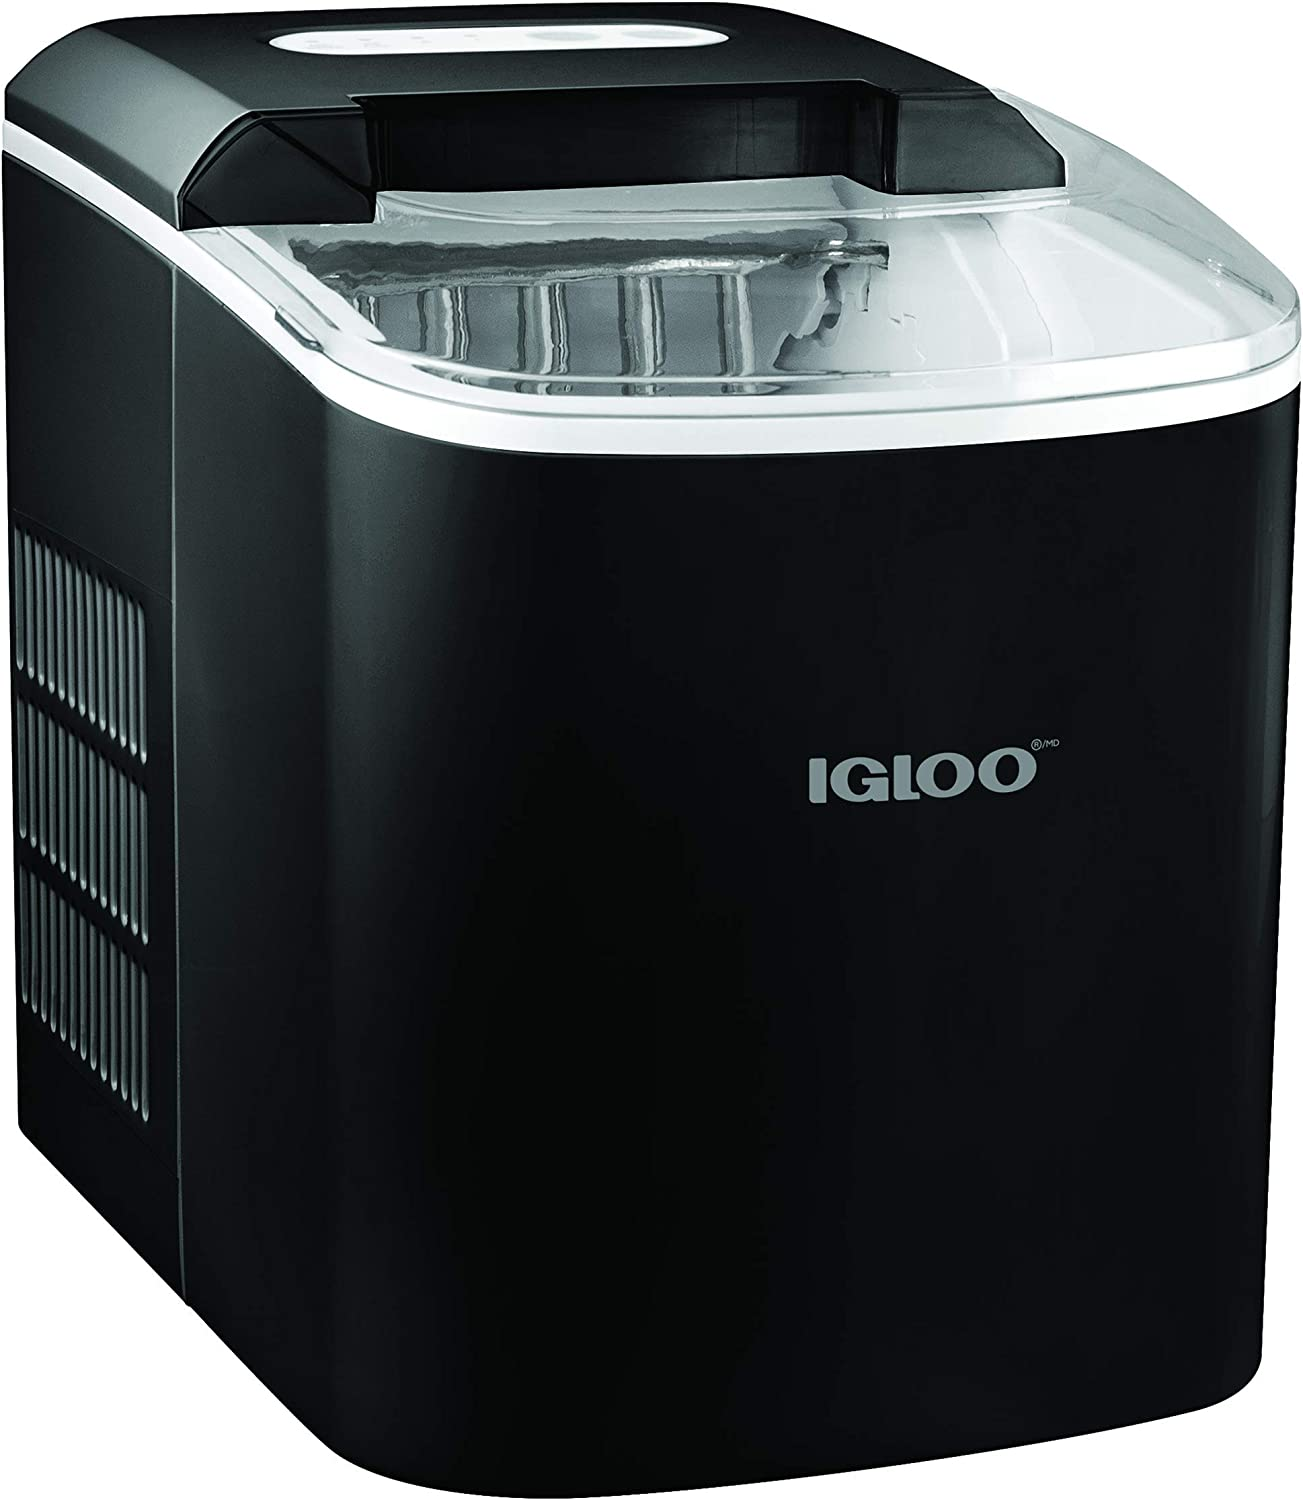 The Best countertop portable ice maker - Our pick